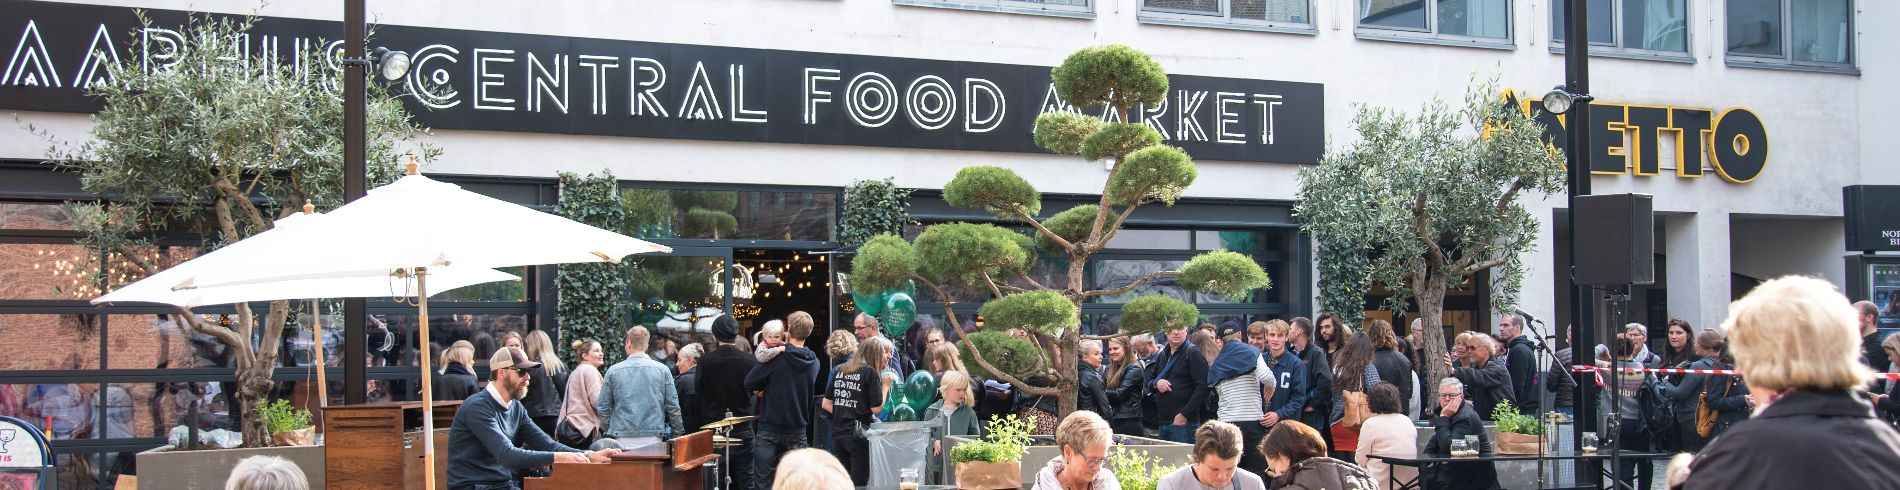 Aarhus Central Food Market cover image